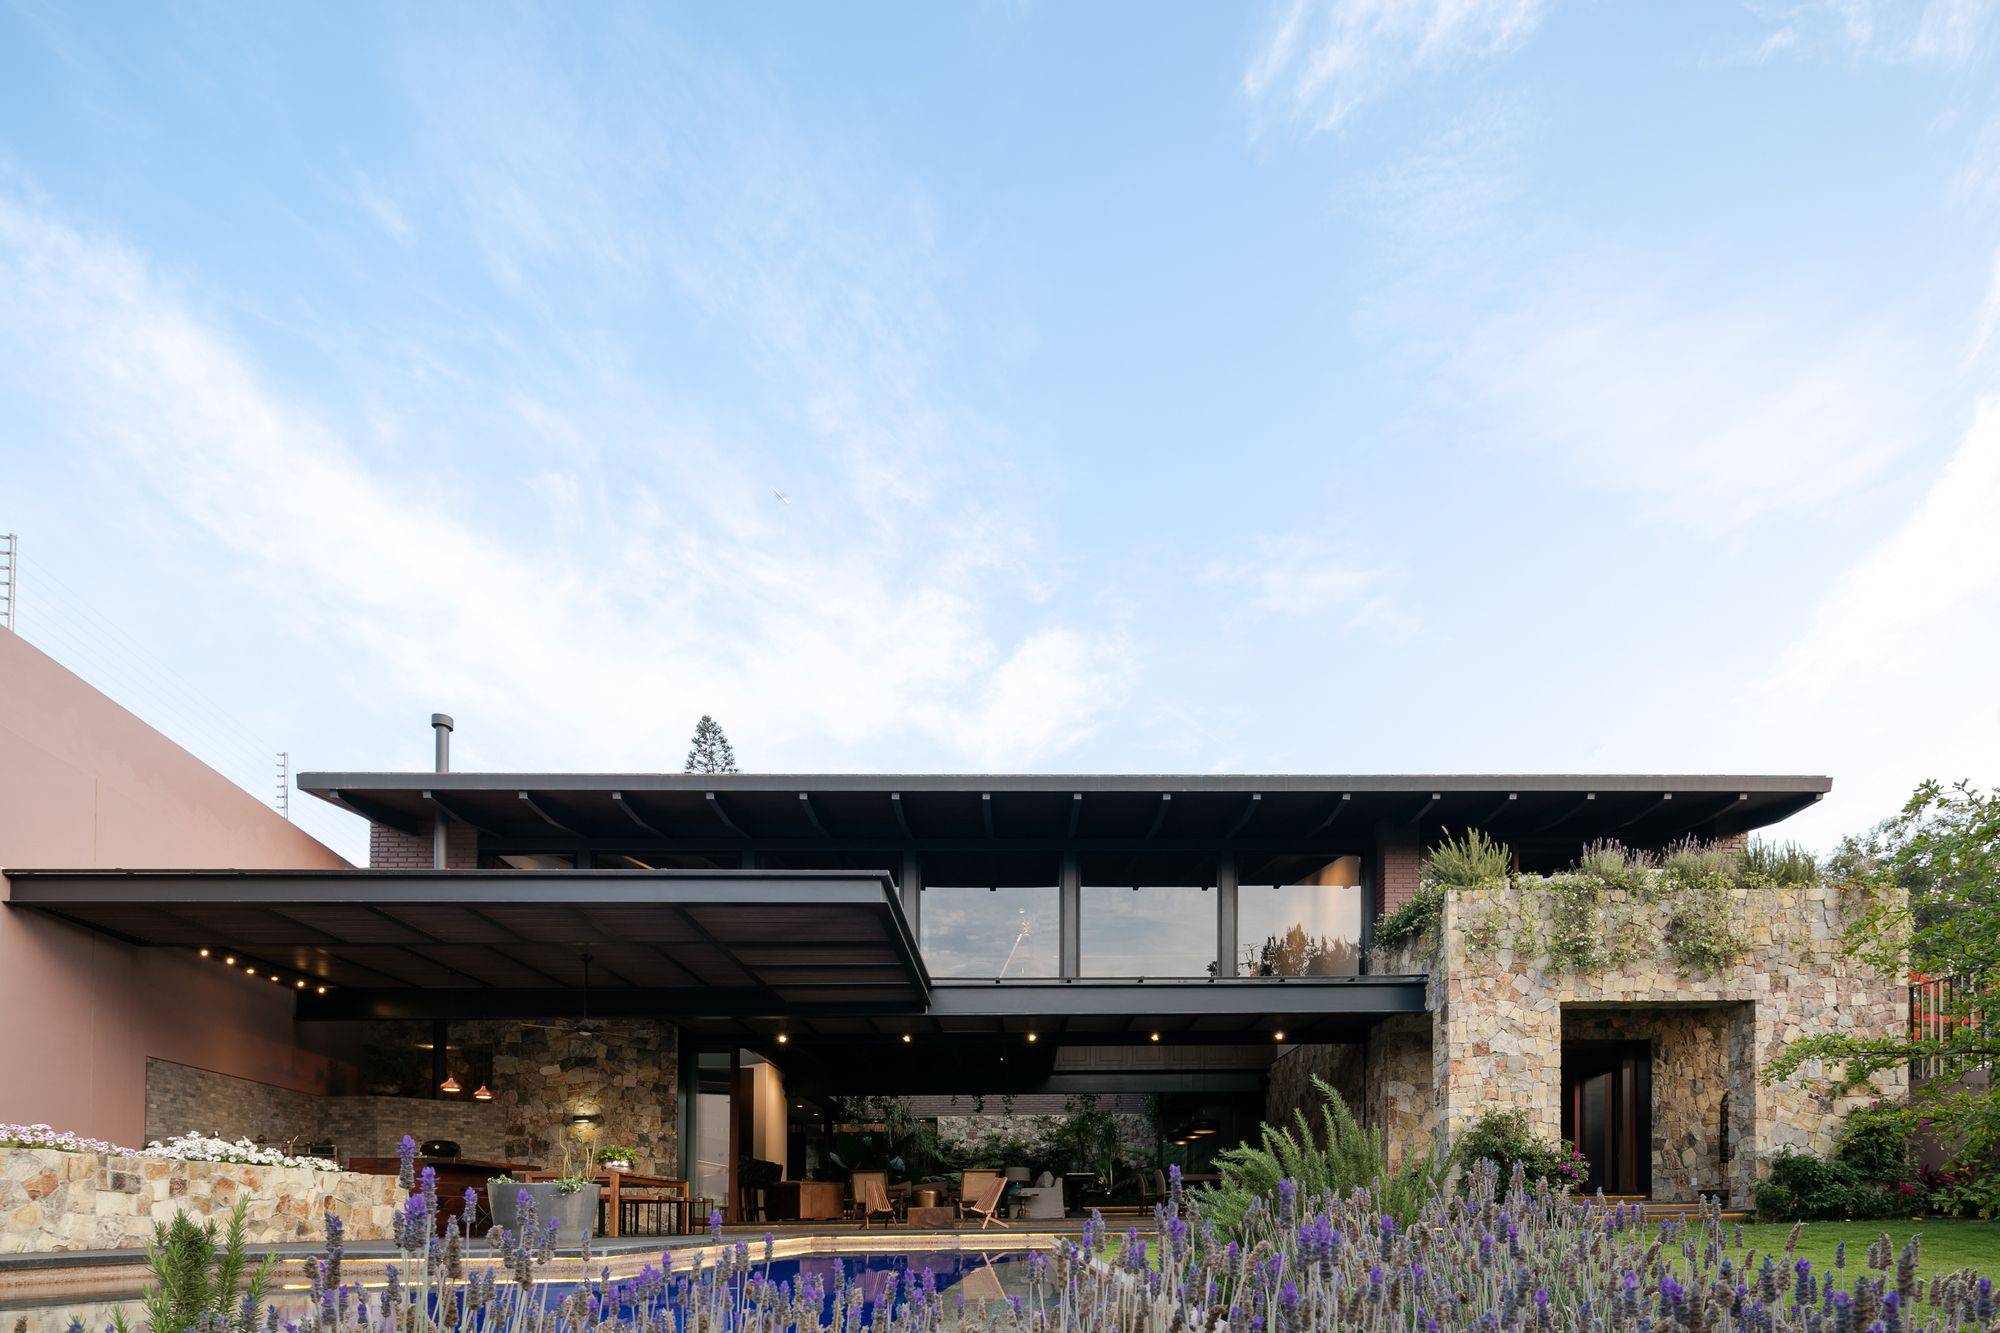 Image 10 Of 26 From Gallery Of House Om1 Ae Arquitectos Photograph By Lorena Darquea Architecture Architecture House House Exterior